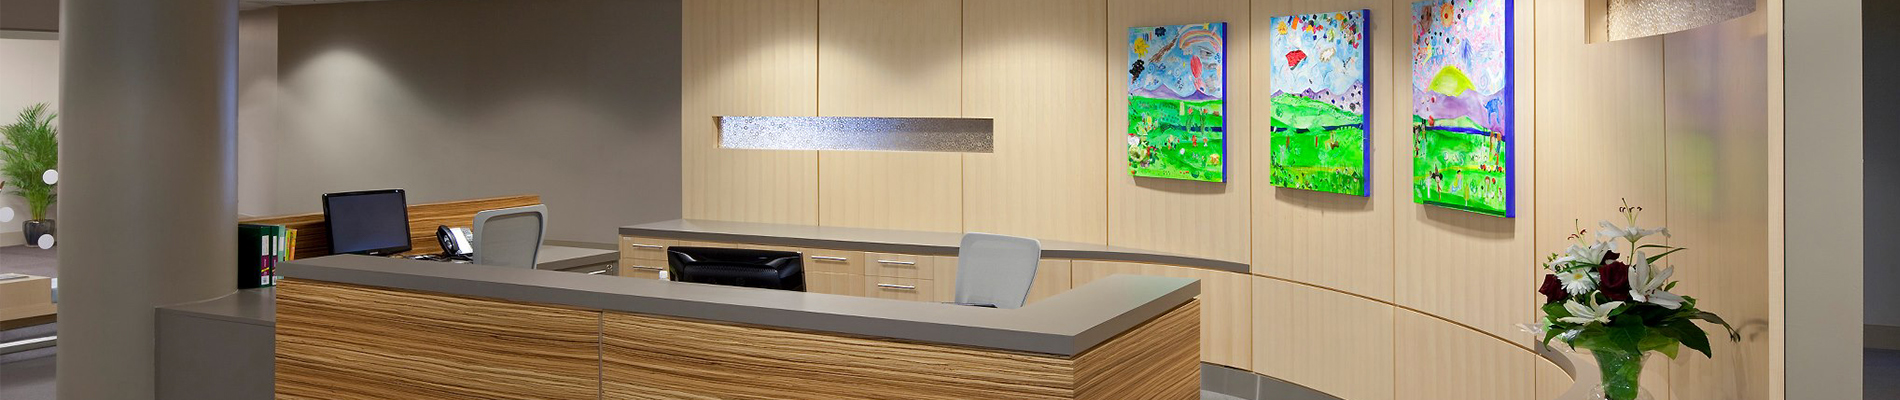 The Ability Hub (front desk) image